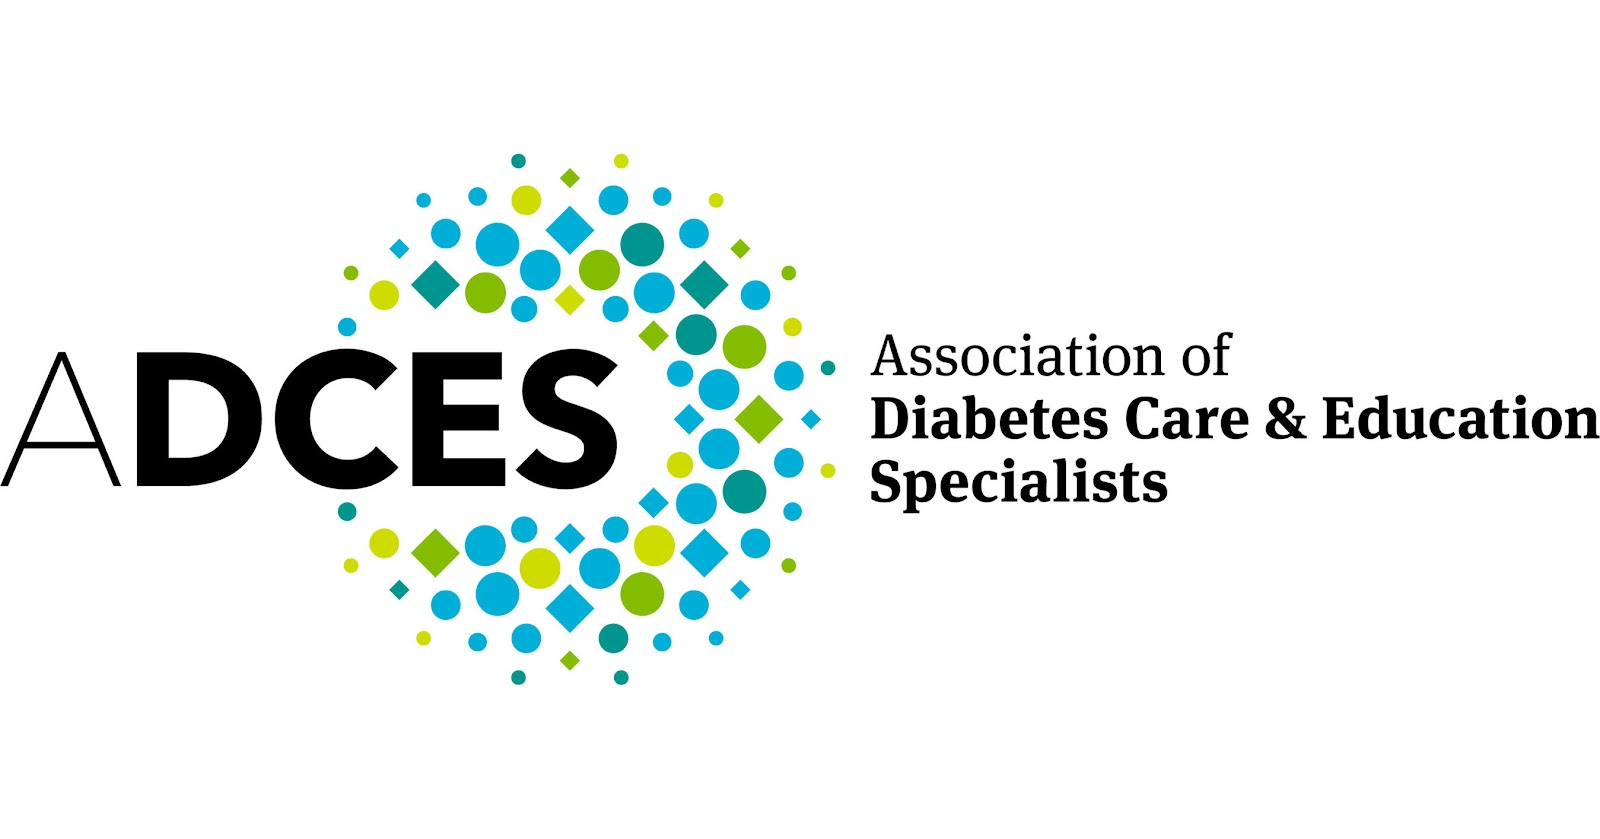 Former AADE rebrands as Association of Diabetes Care & Education Specialists